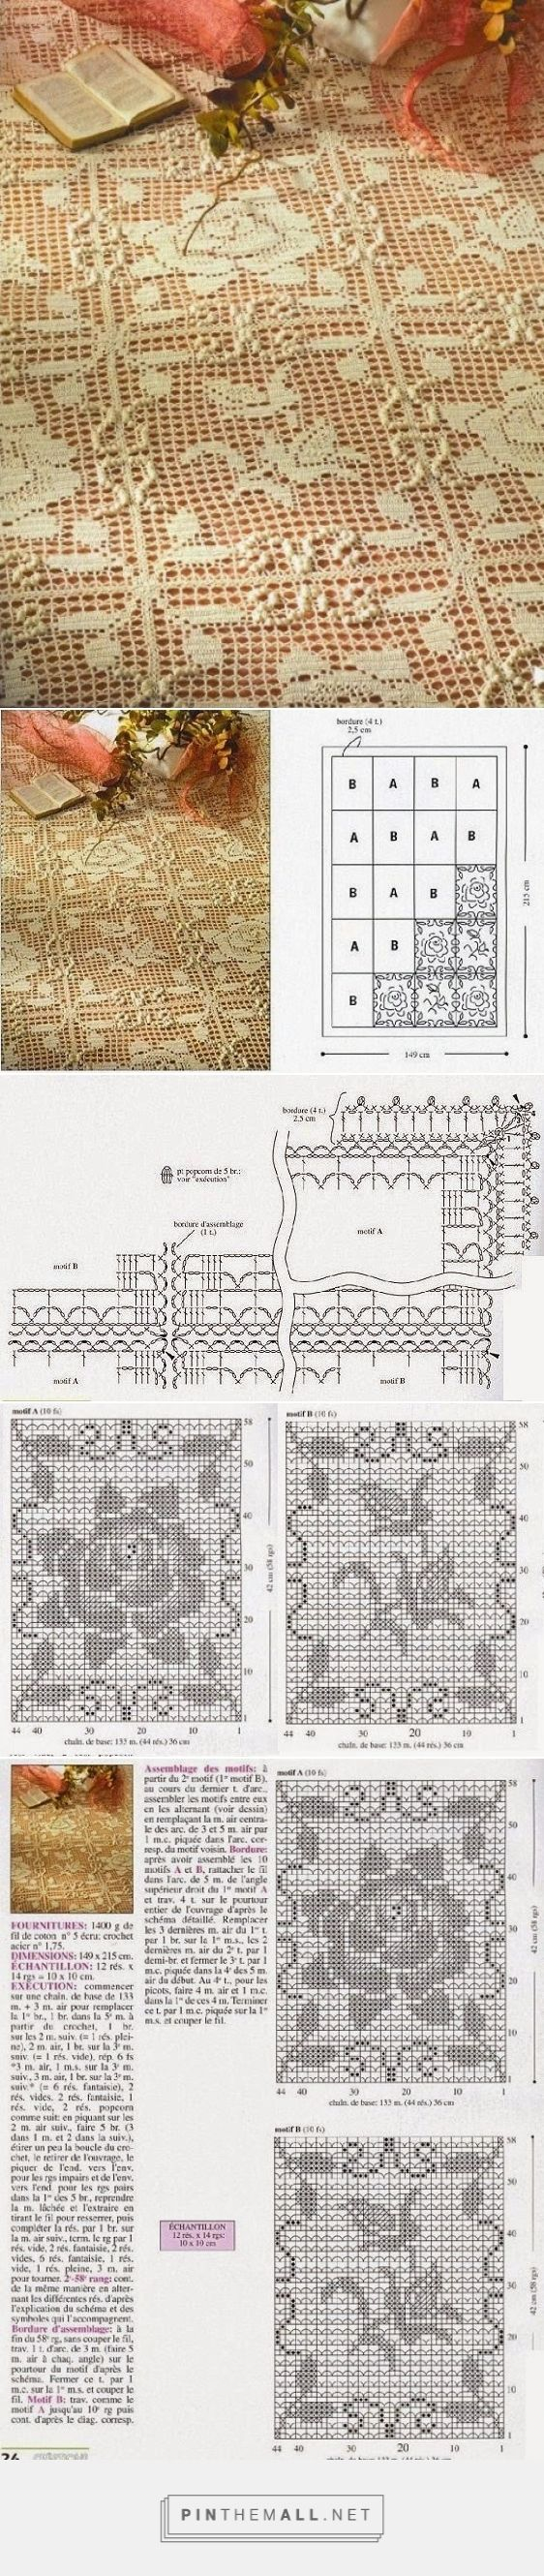 Crochet and arts: bedspreads - created via http://pinthemall.net